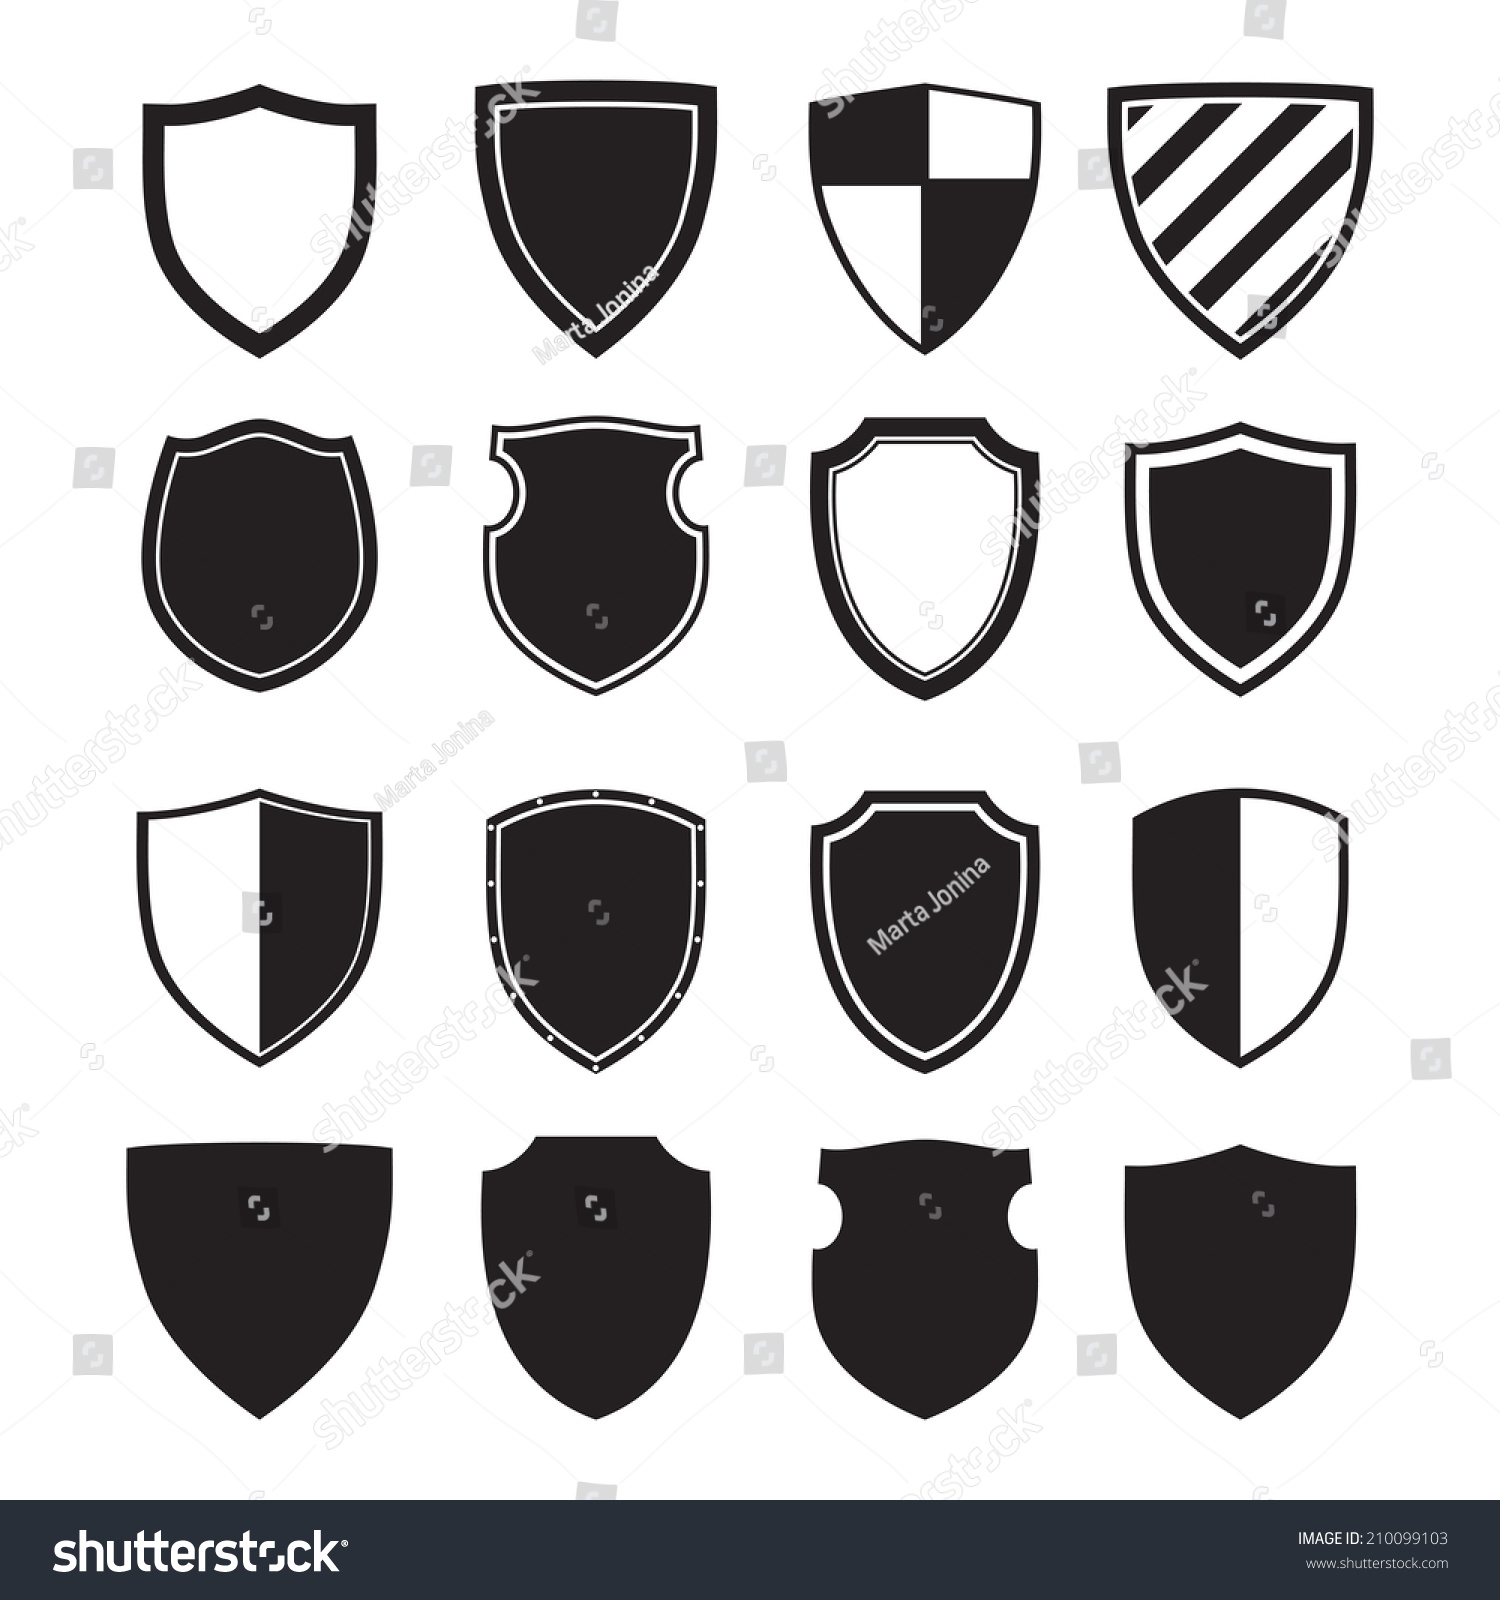 Shield Silhouettes Signs Symbols Safety Security Stock Vector